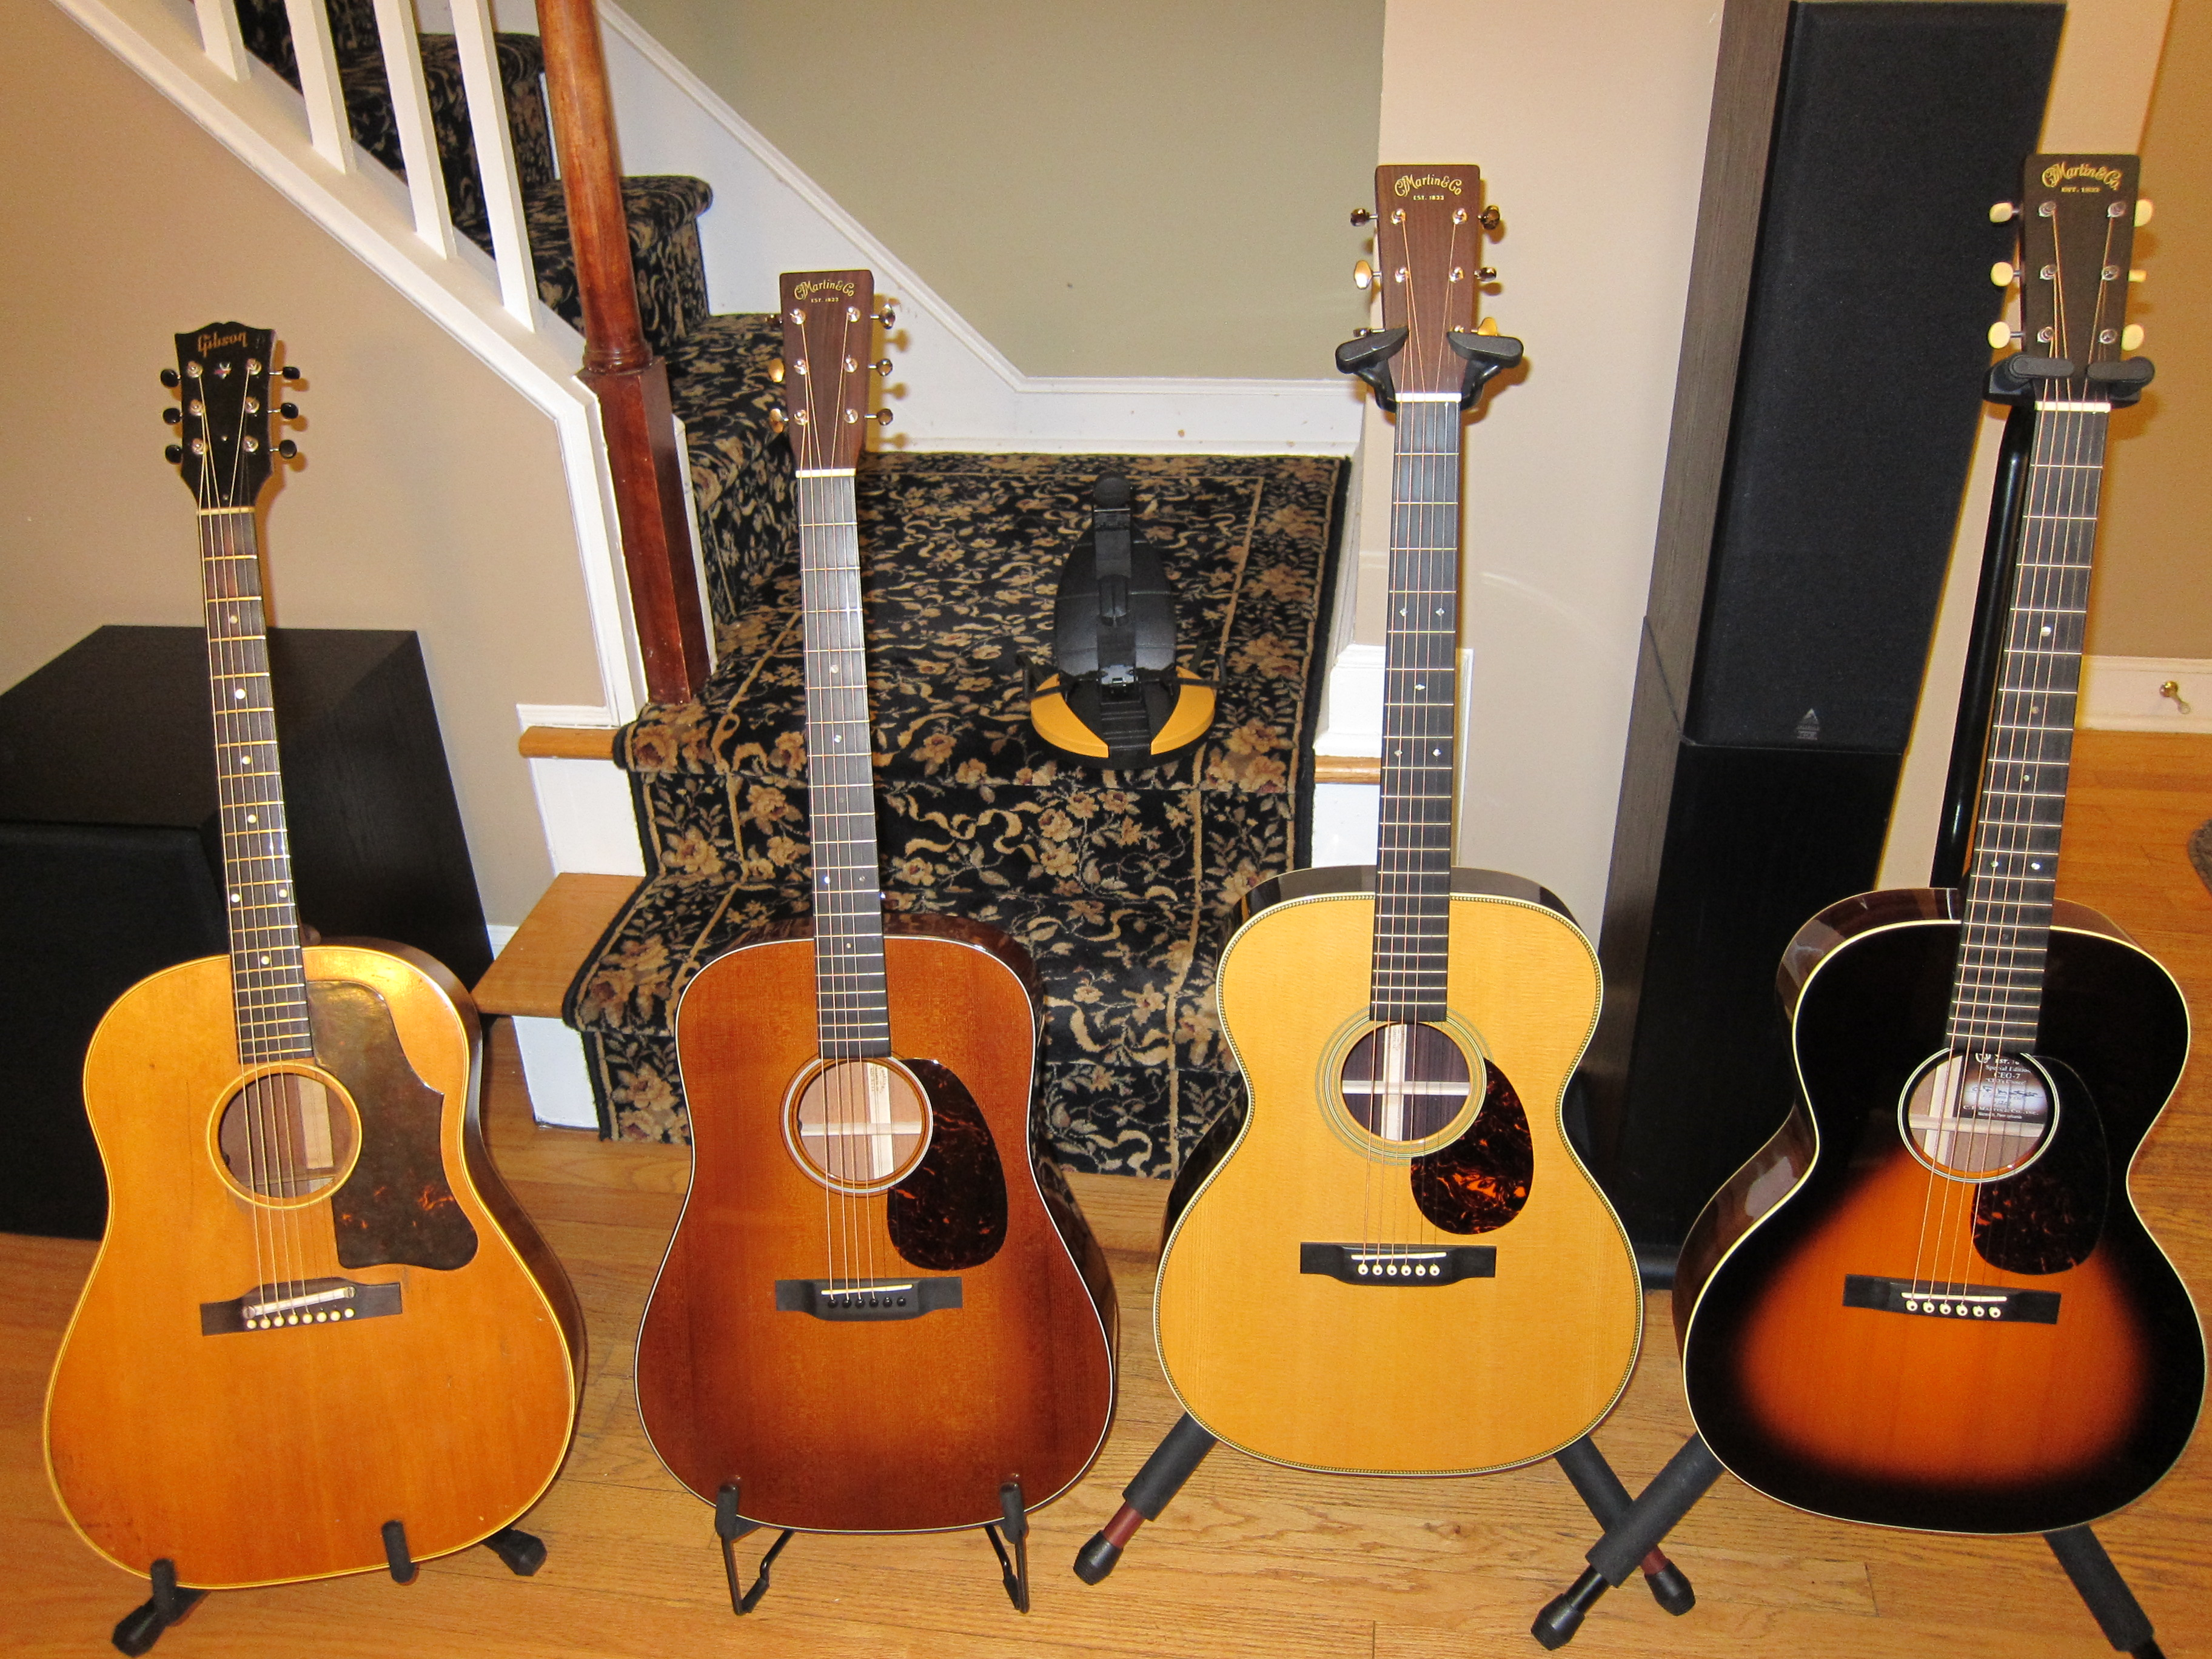 file c f martin x3 with gibson j 50 left one missing 2015